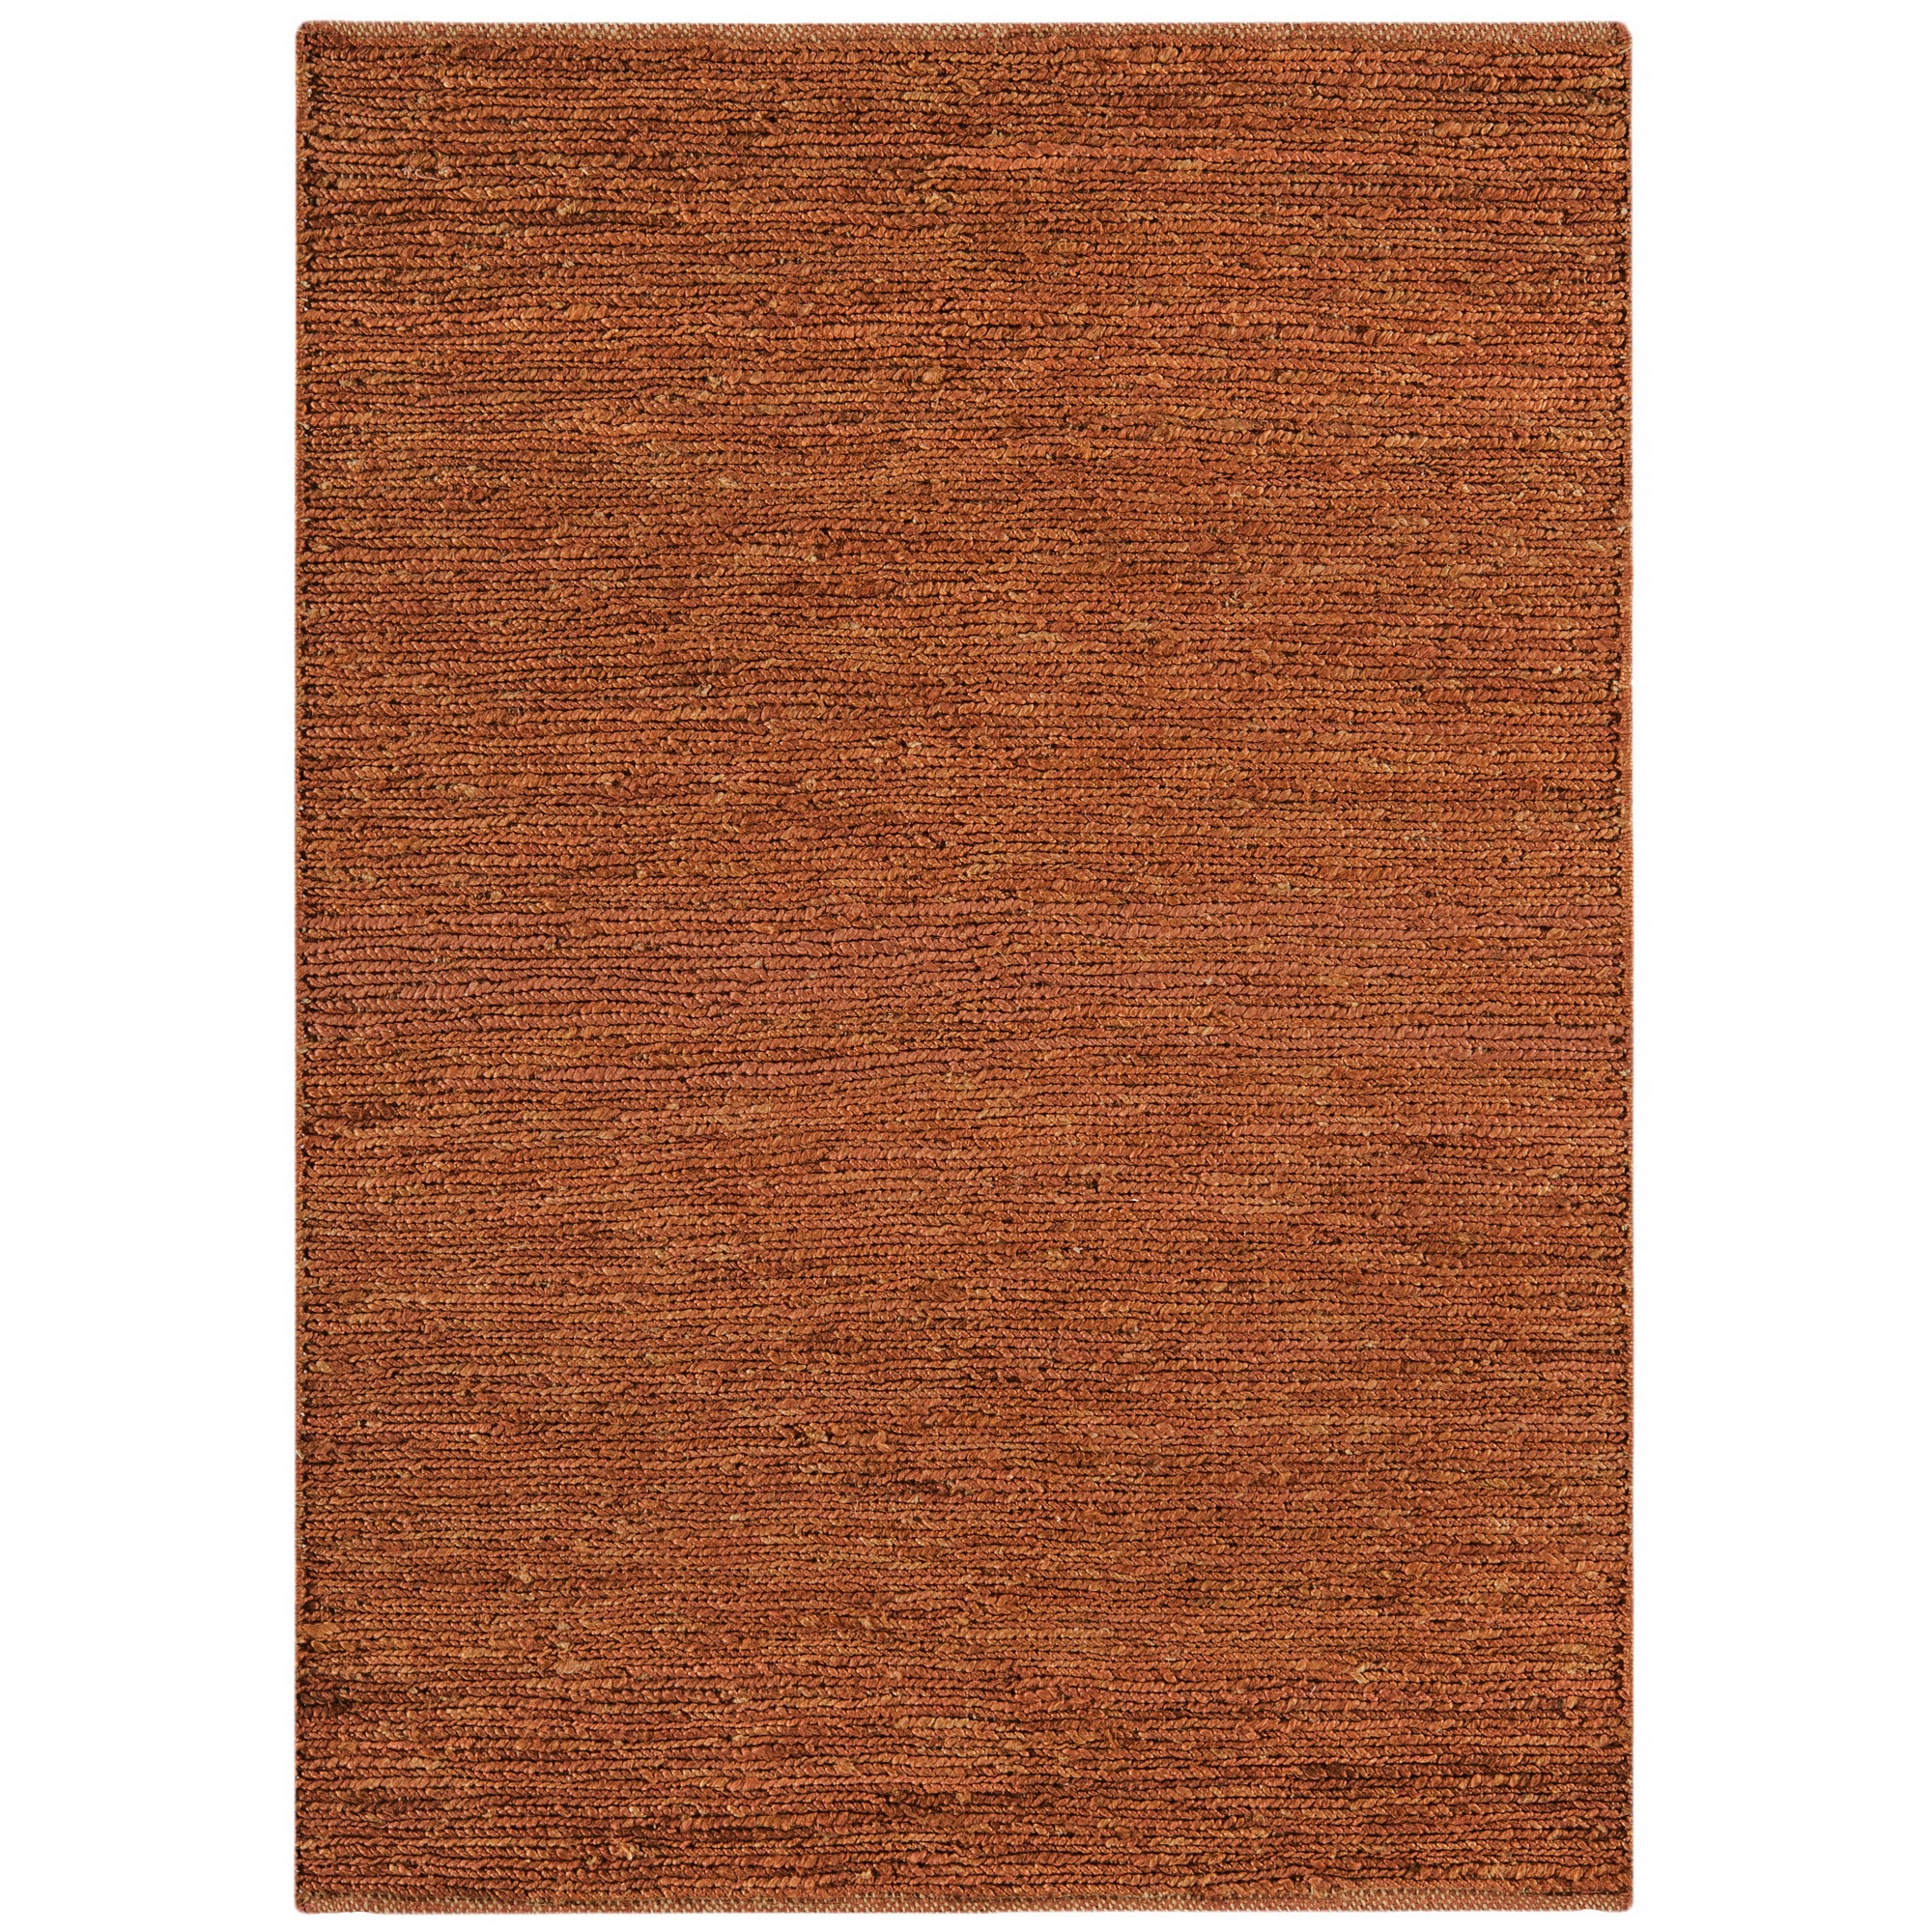 Jute Soumak Rugs in Terracotta